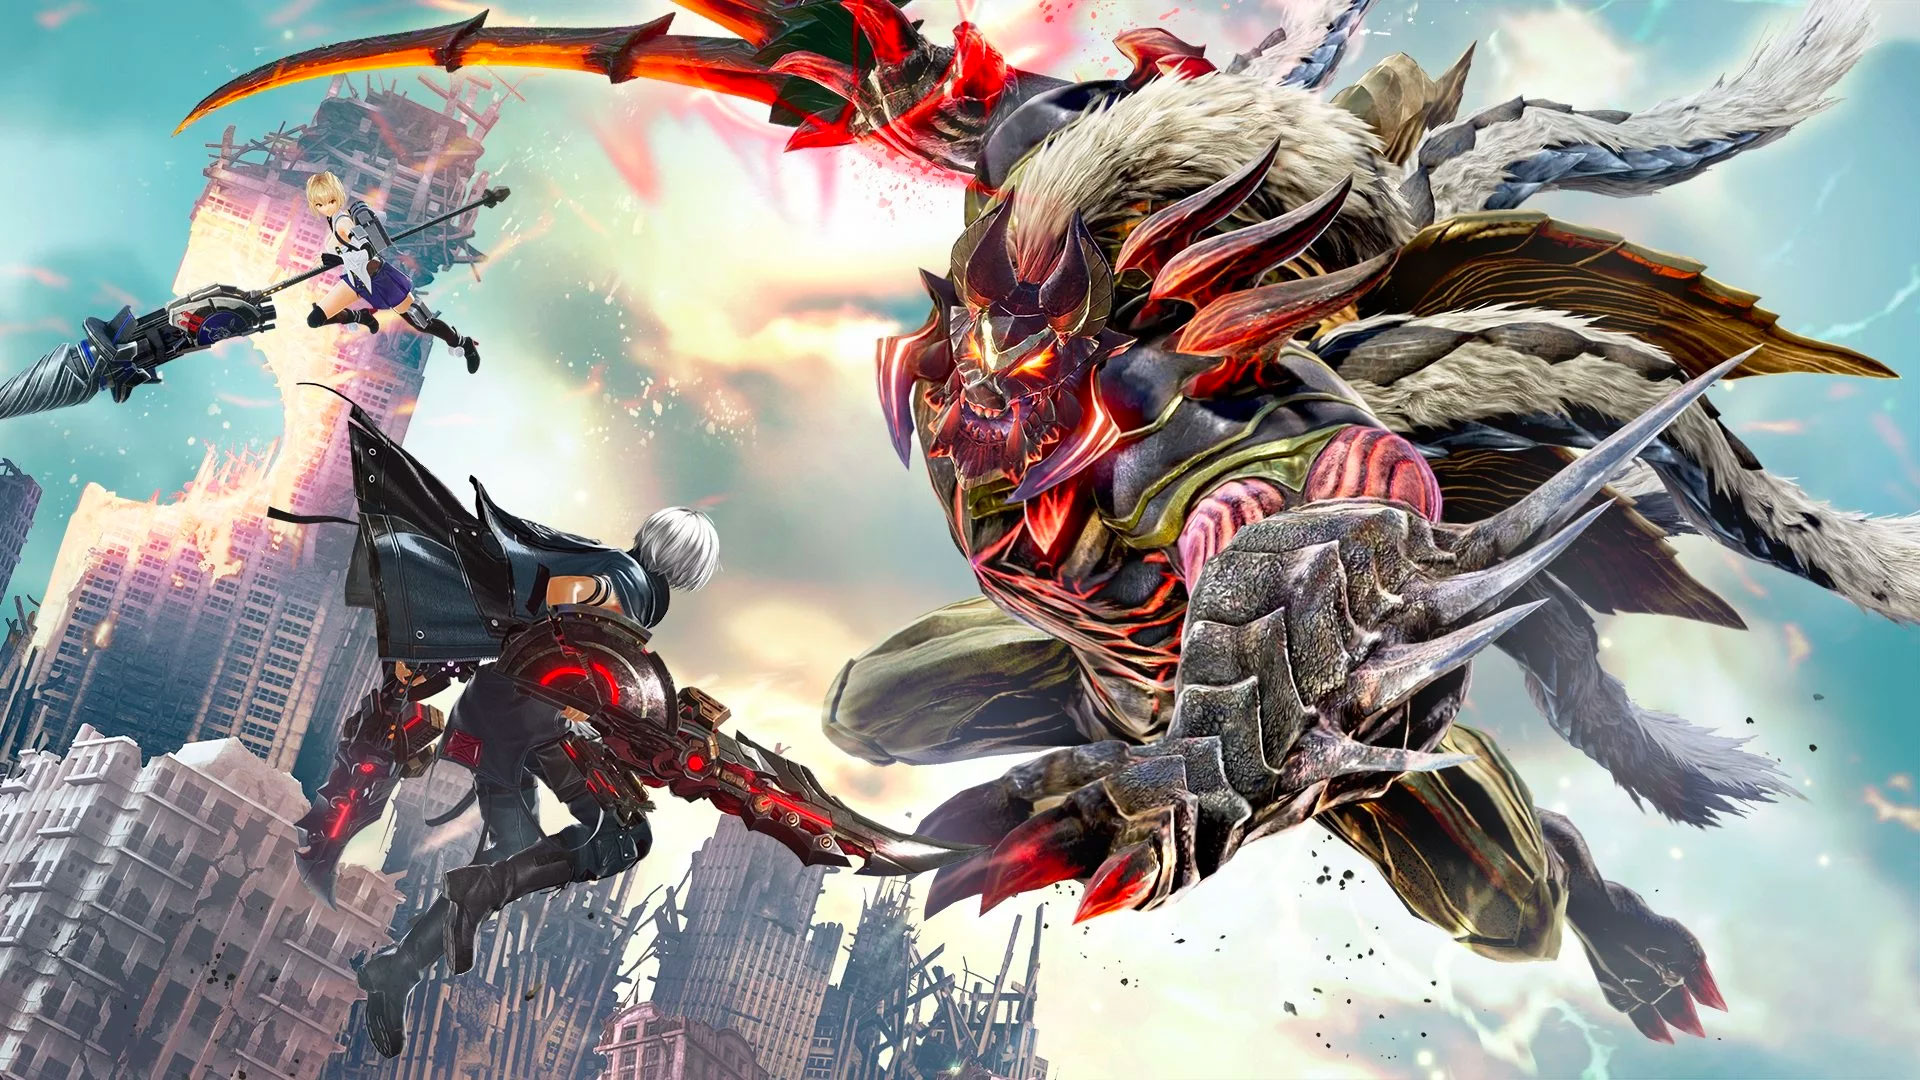 God Eater 3 Wallpapers In Ultra Hd 4k Gameranx